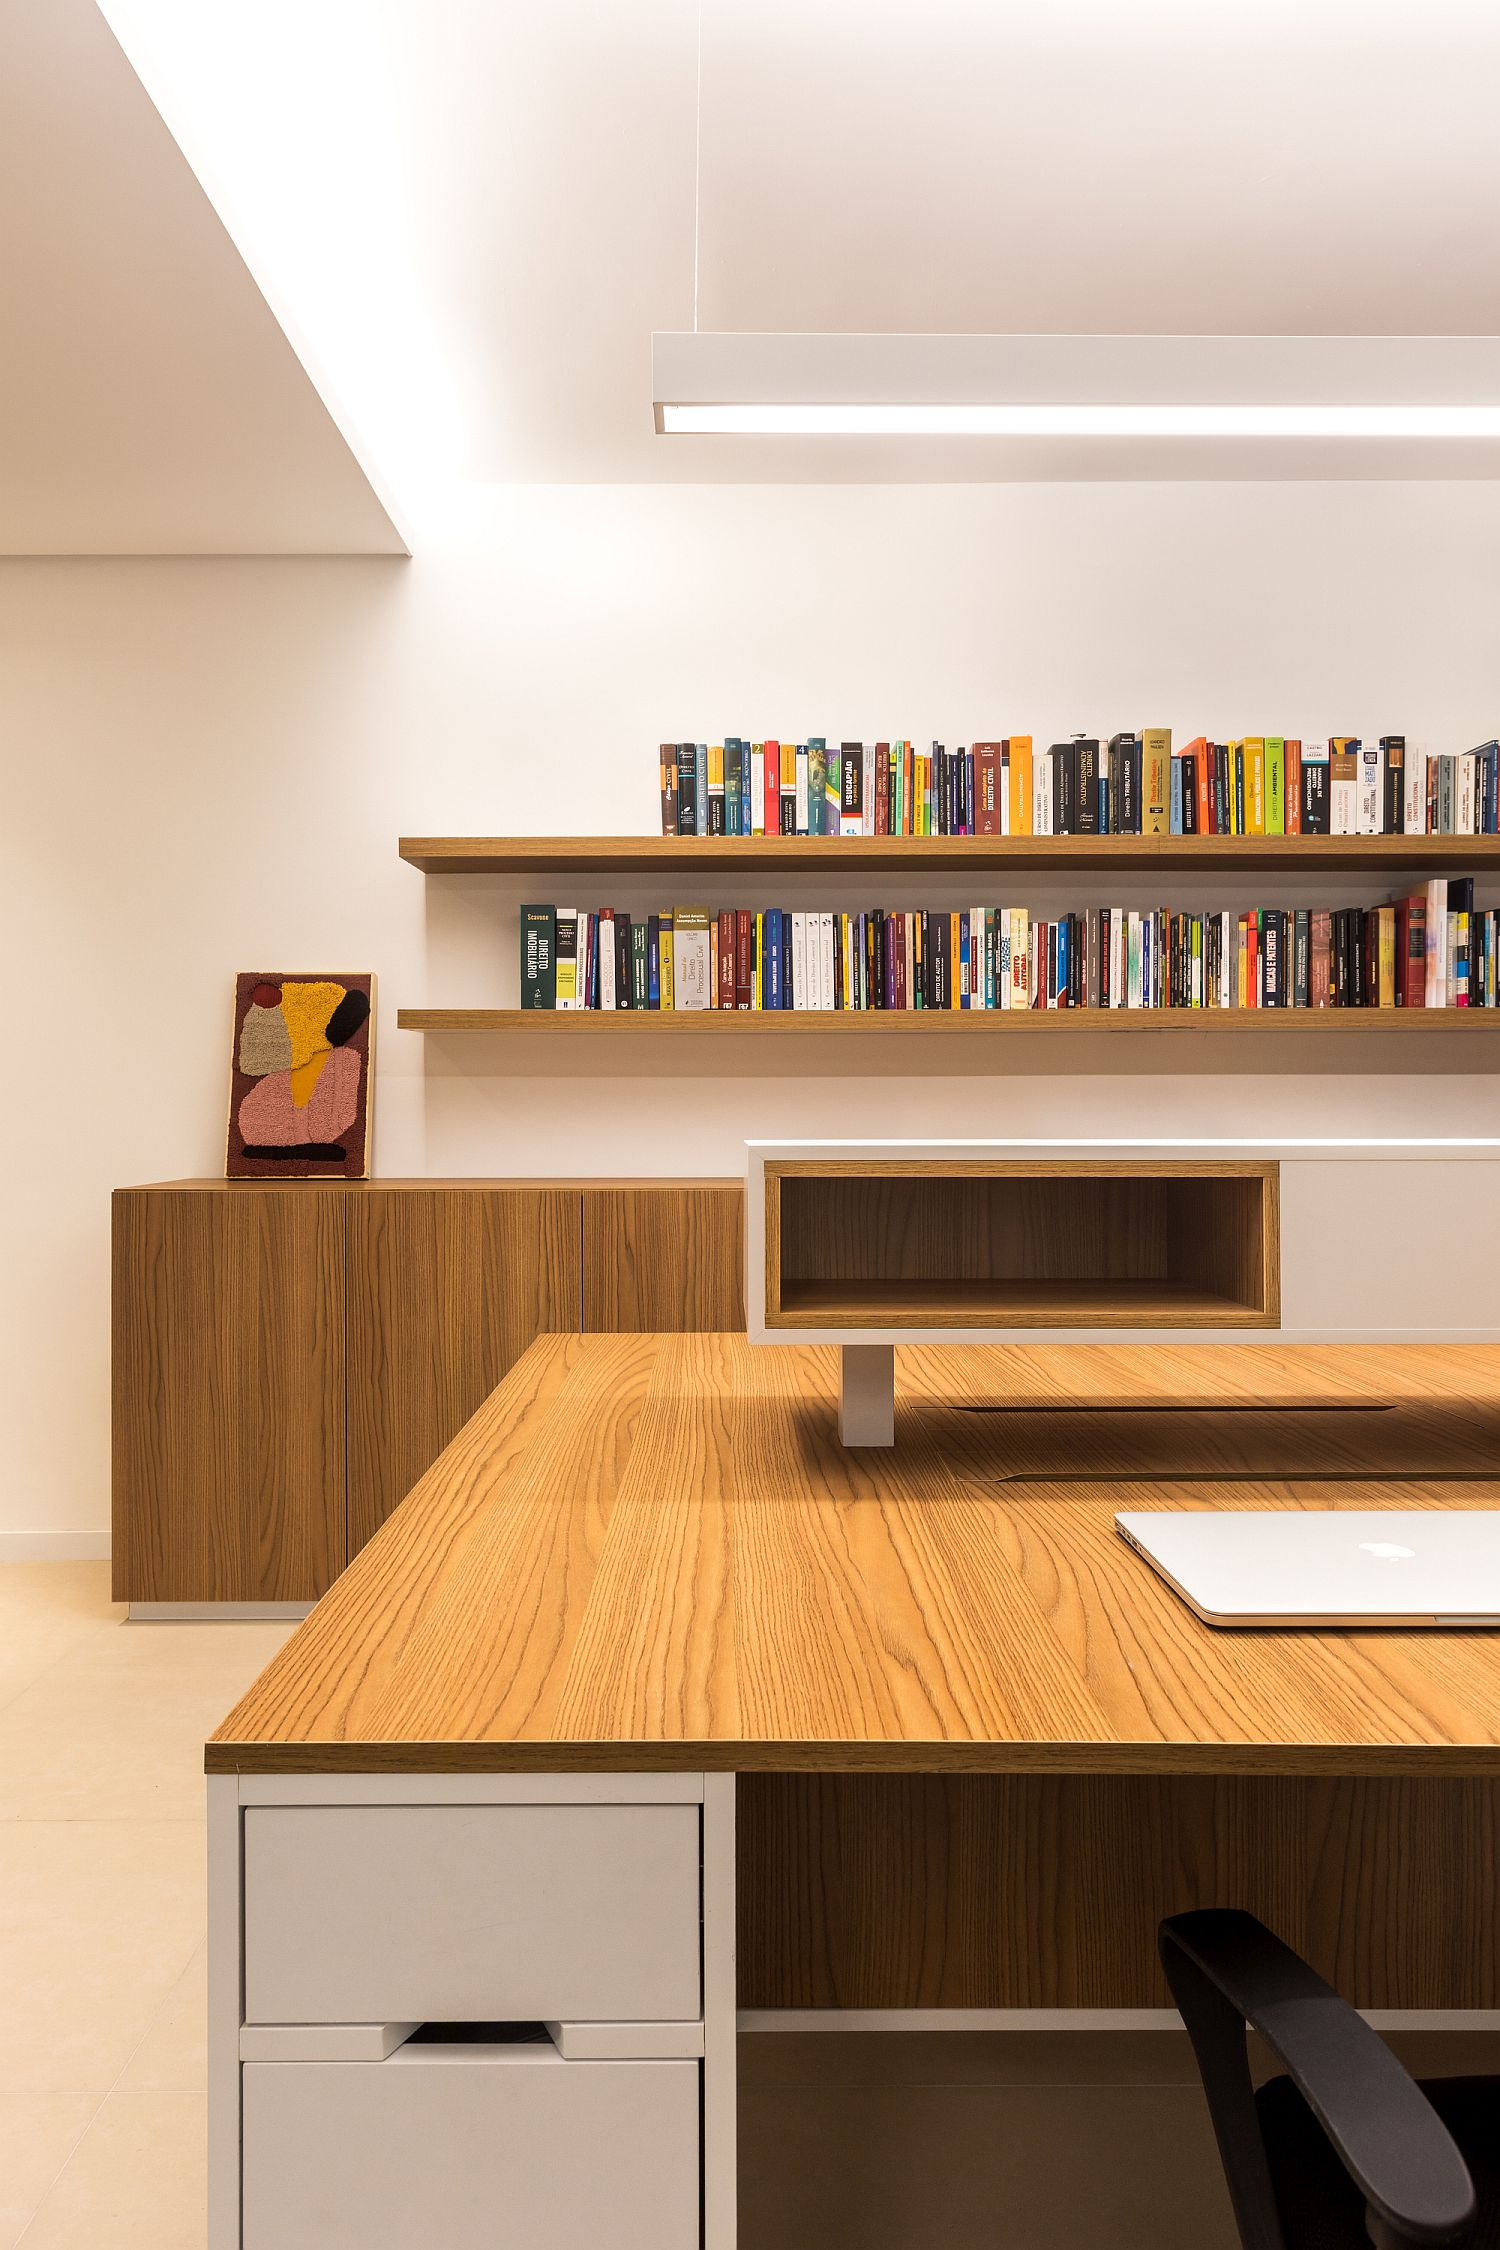 Series of floating wooden shelves hold books and other accessories